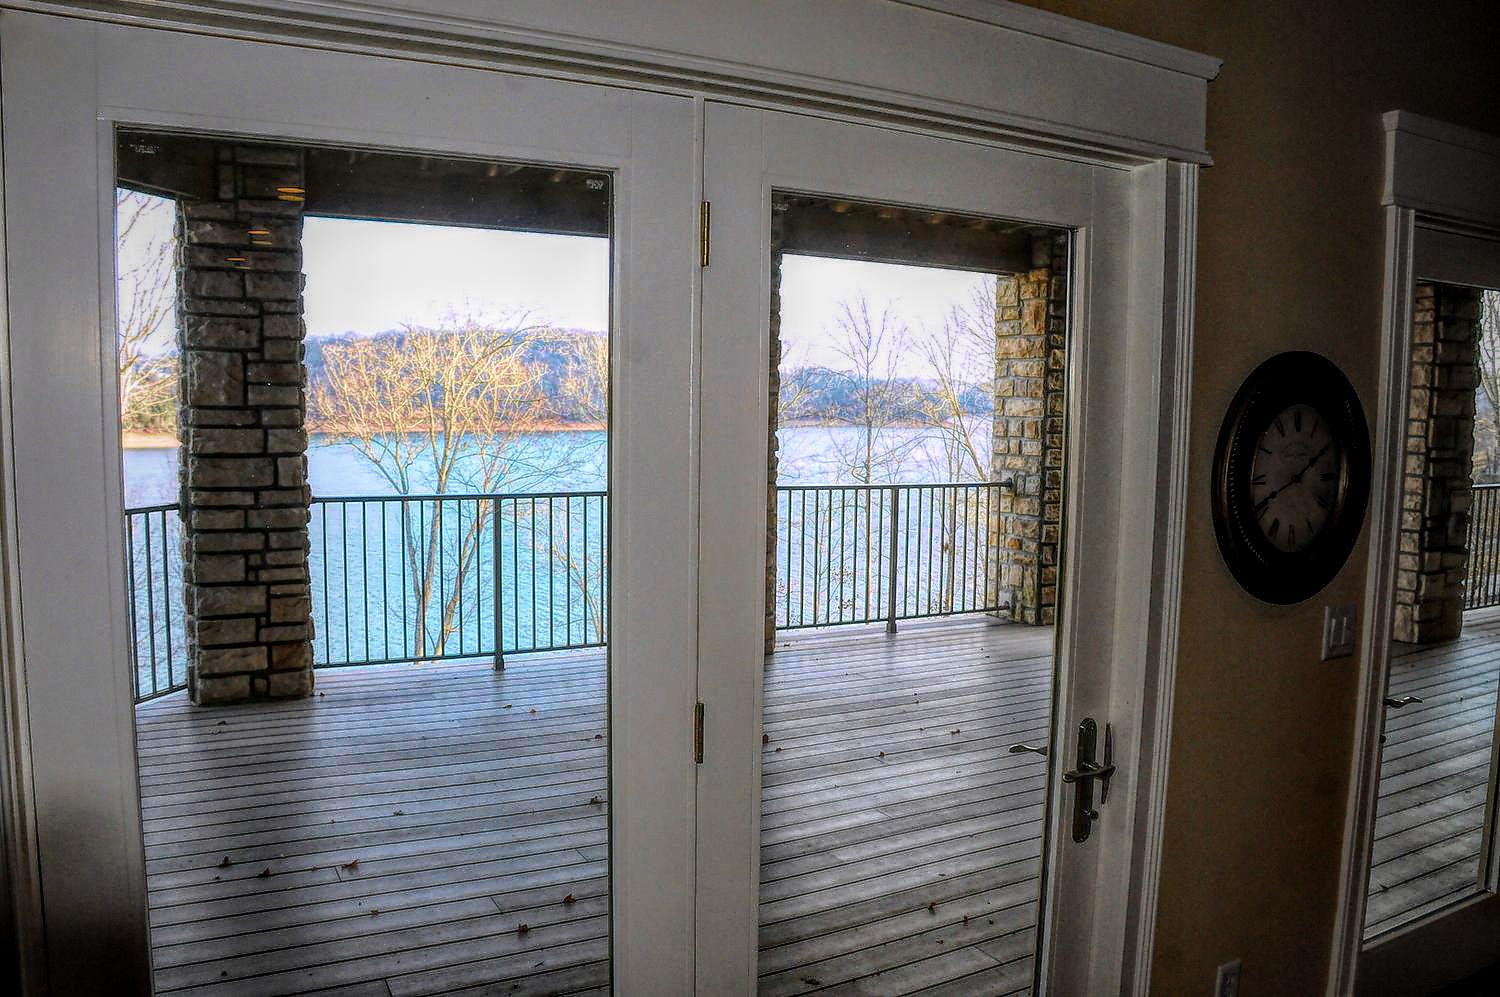 Relax on the patio deck with panoramic views of beautiful Norris Lake at Norris Crest lake community